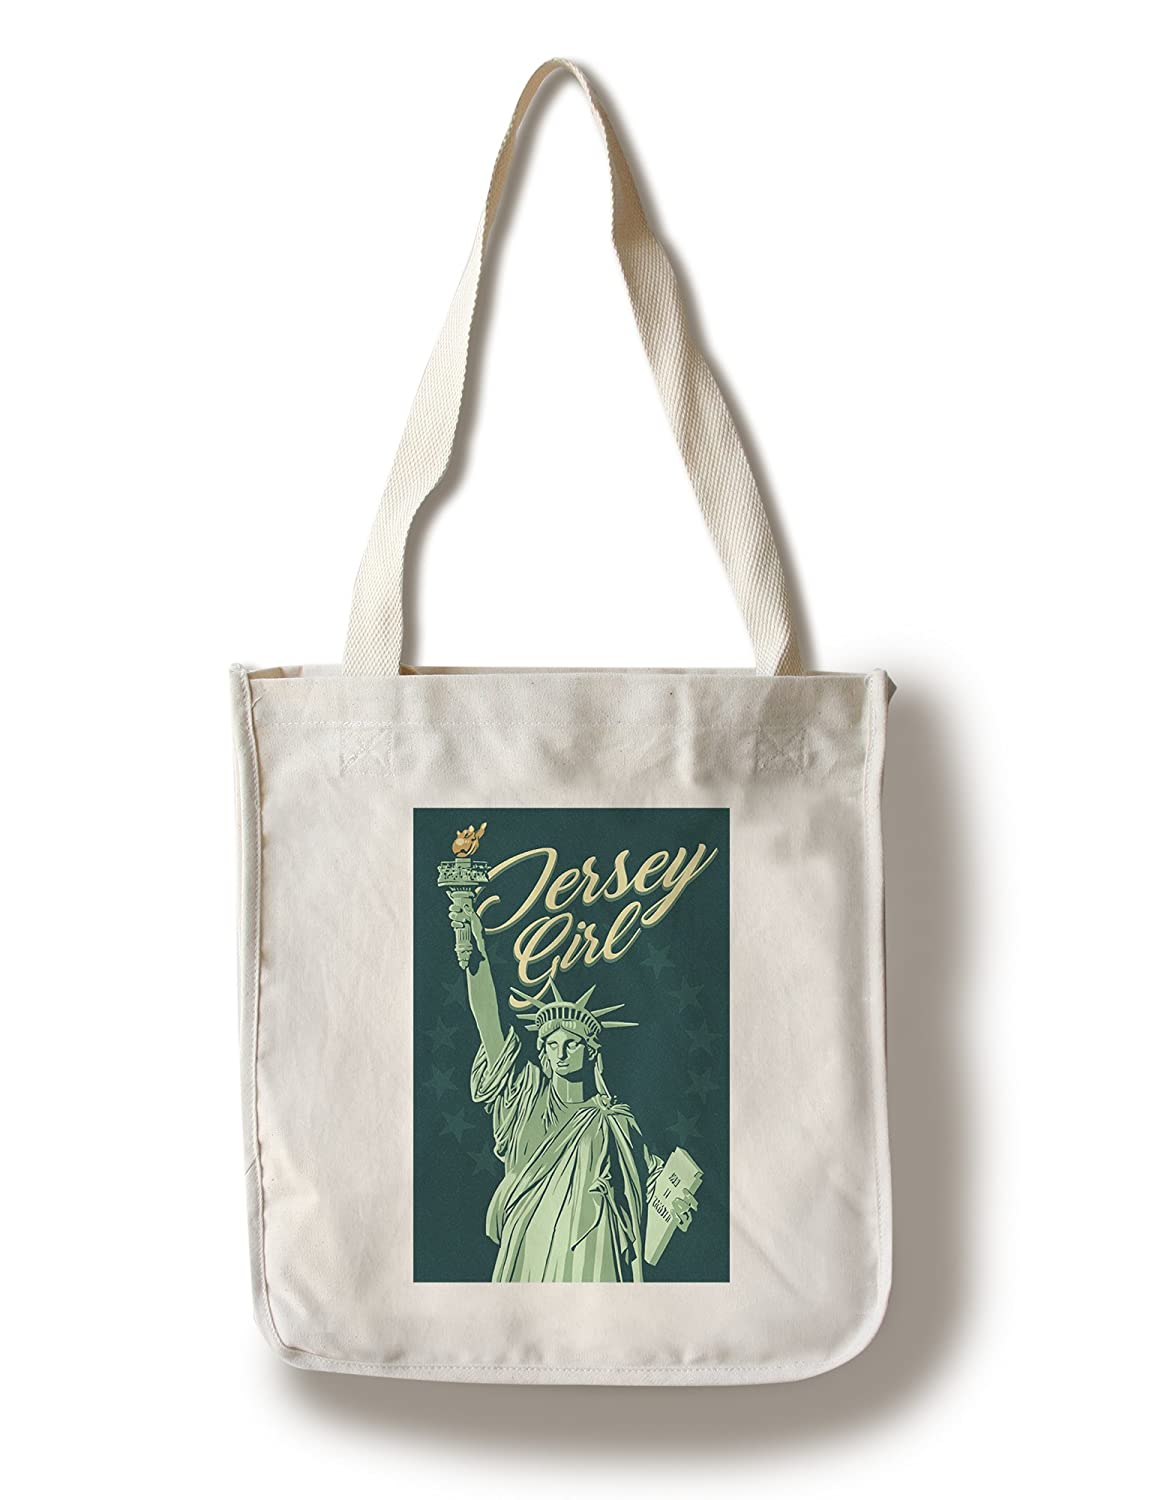 Jersey Girl – 自由の女神 – 緑背景 Canvas Tote Bag LANT-84733-TT B078PXCHT8  Canvas Tote Bag